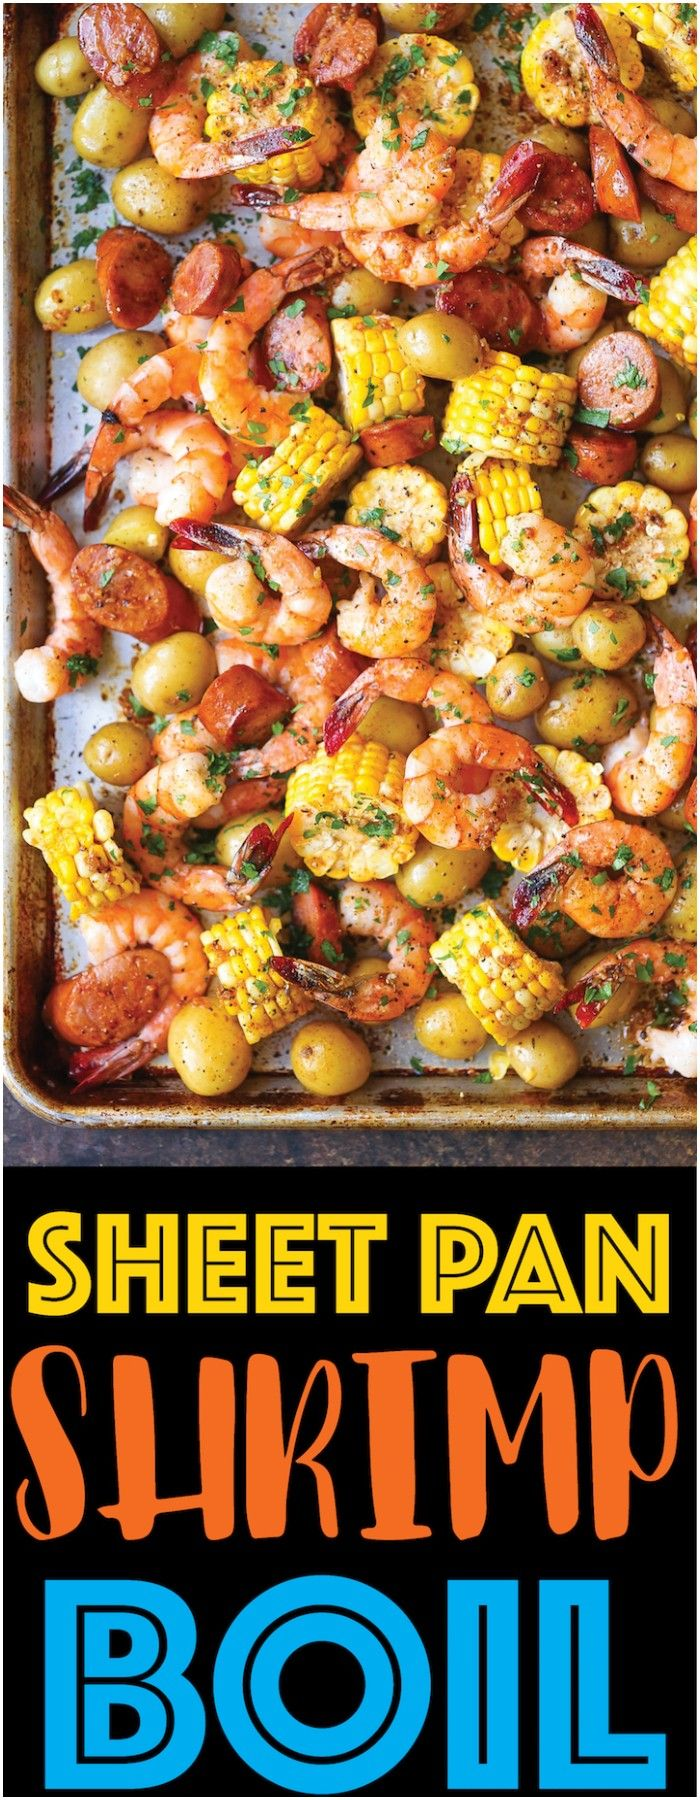 Sheet Pan Meals - Healthy And Delicious Recipes images